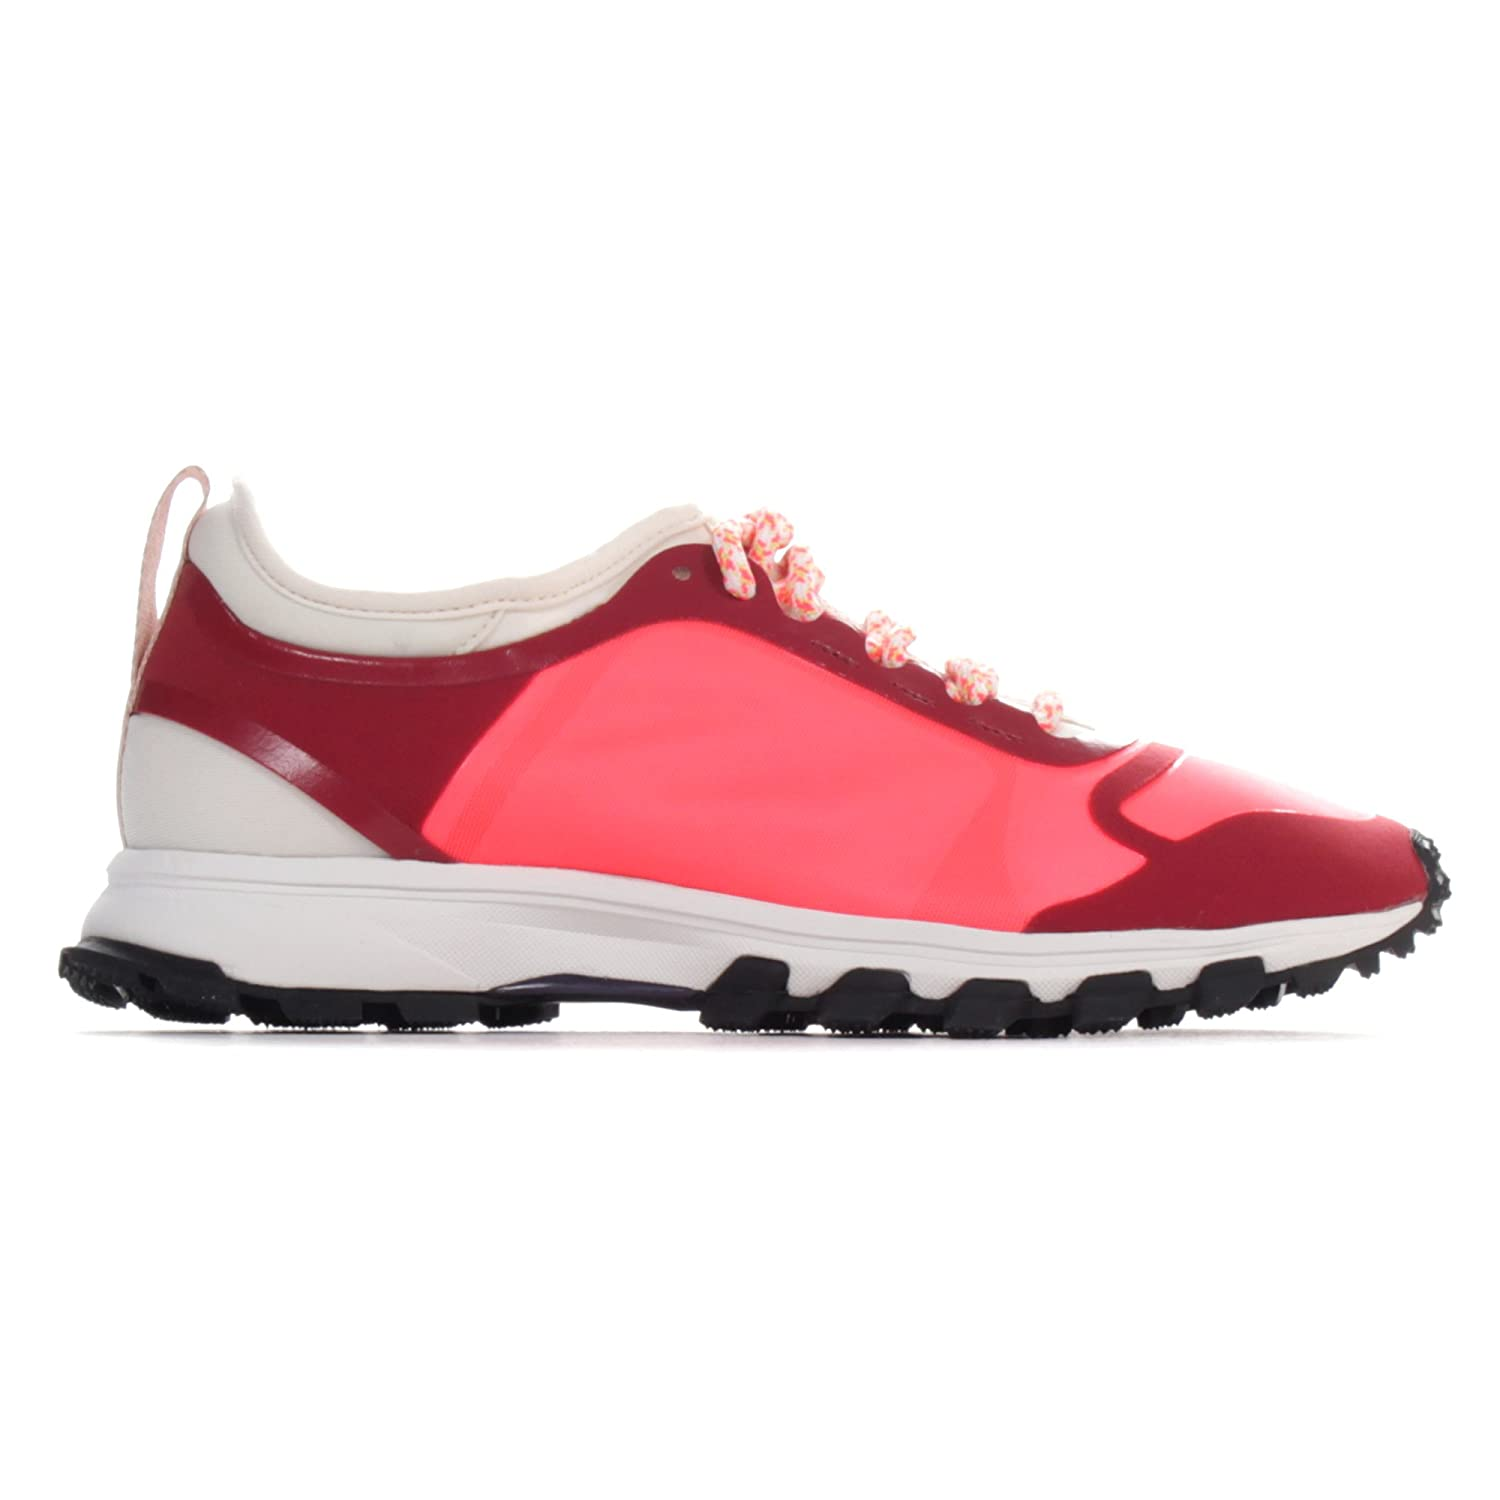 adidas Stella McCartney XT Adizero 2 Womens Running Shoes  Amazon.co.uk   Shoes   Bags 6967ad3bfb2a